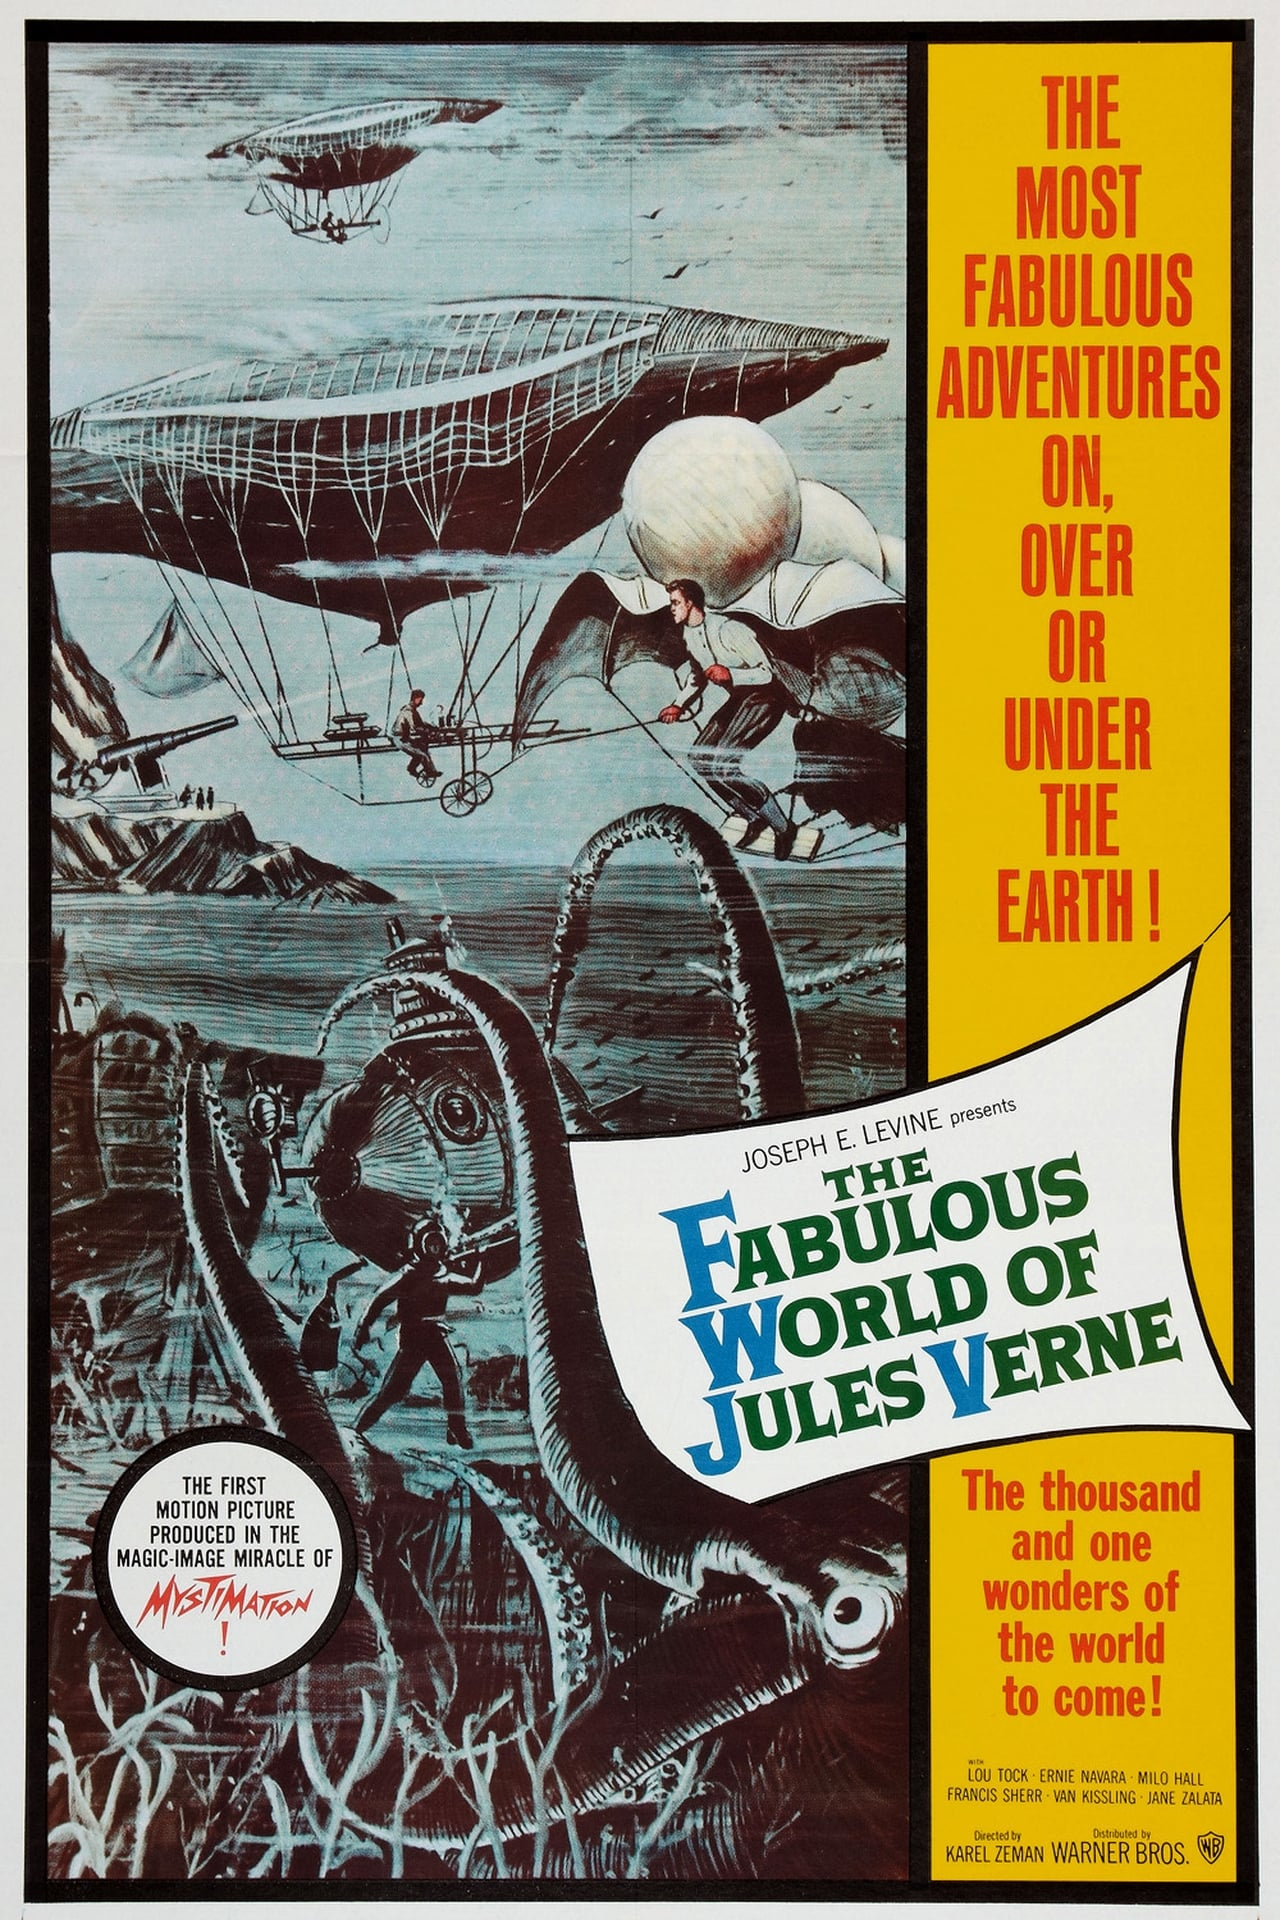 The Fabulous World Of Jules Verne (1958)